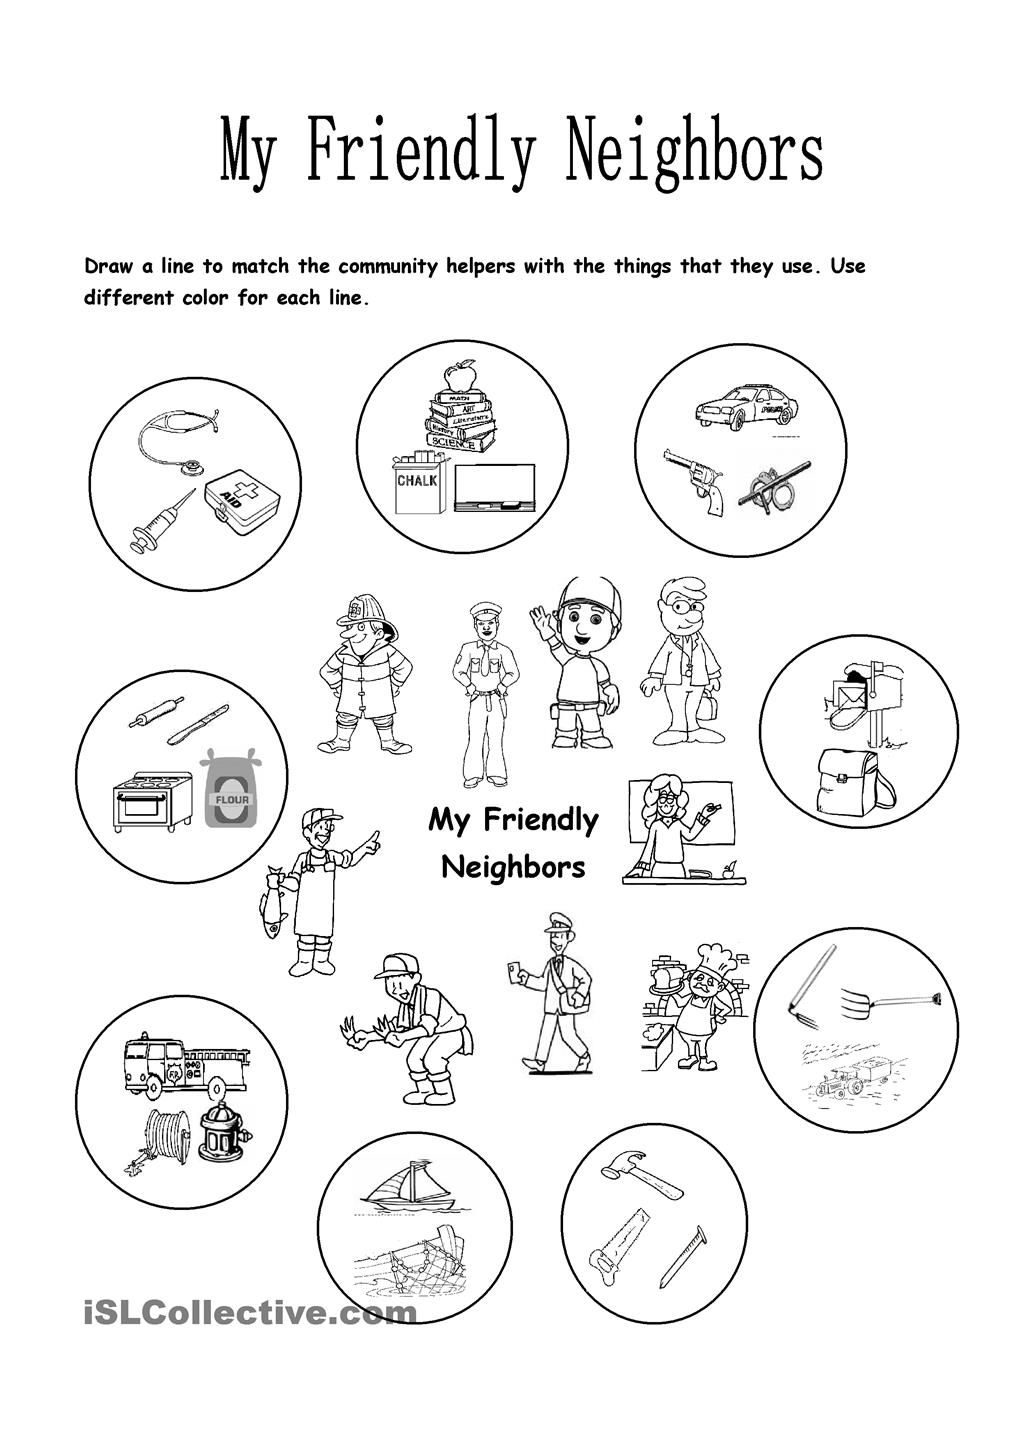 worksheet Neighborhood Worksheets For Kindergarten my friendly neighbors community pinterest social studies this worksheet focuses on the helpers and things that they use children will have to match th